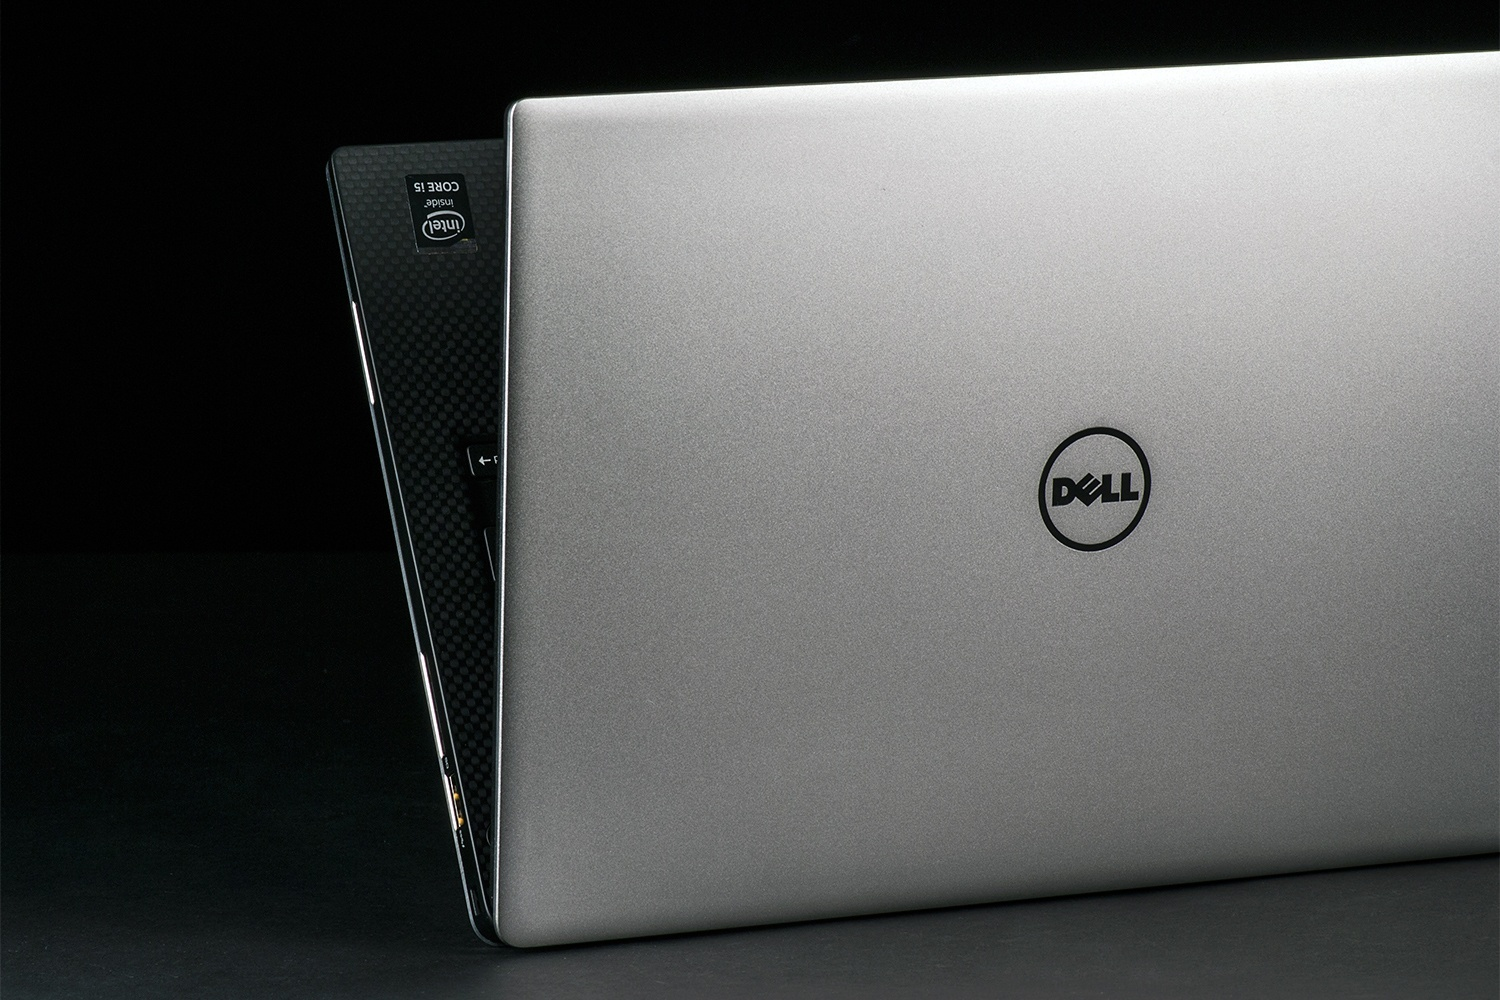 Dell's Ubuntu-Flavored Skylake XPS 13 expected to ship soon